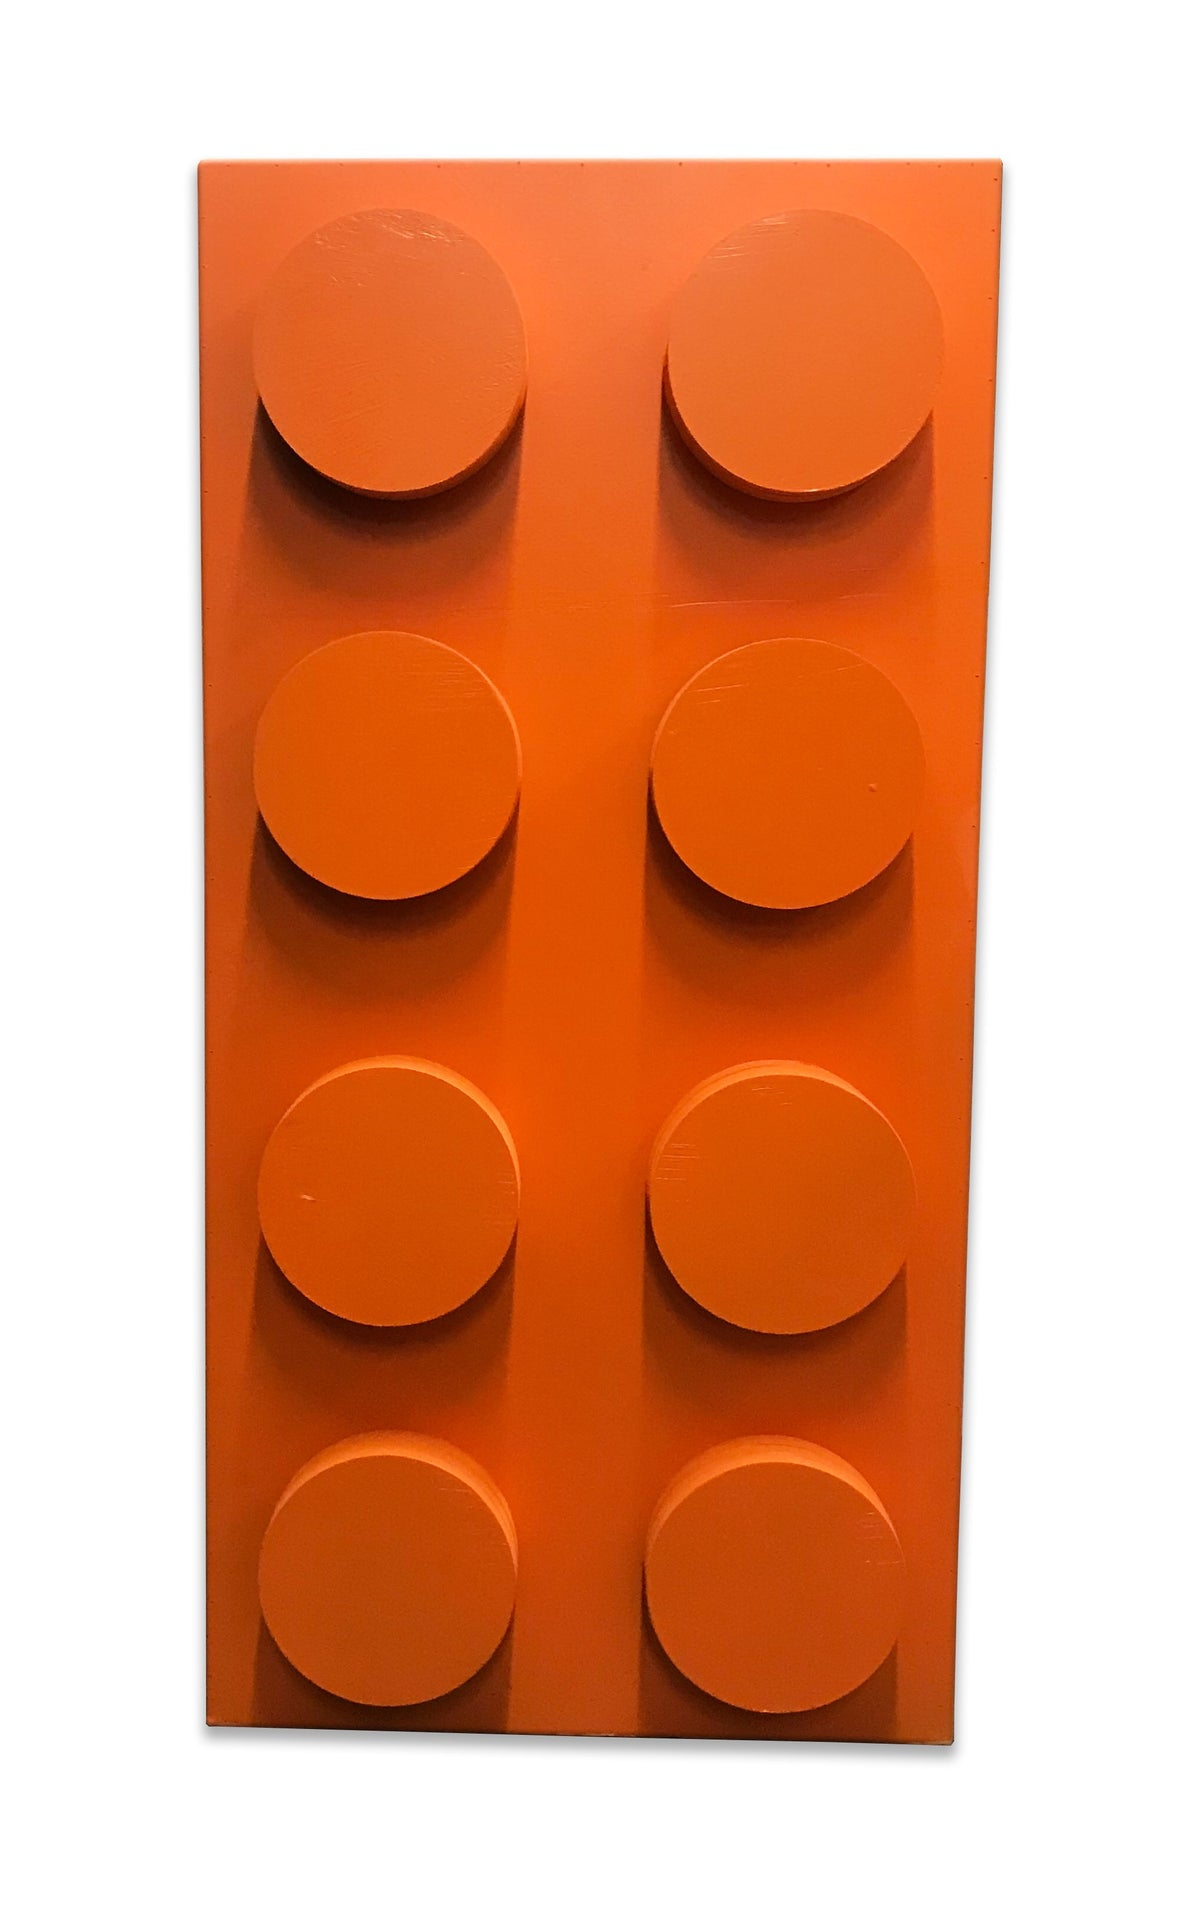 Orange Lego Brick